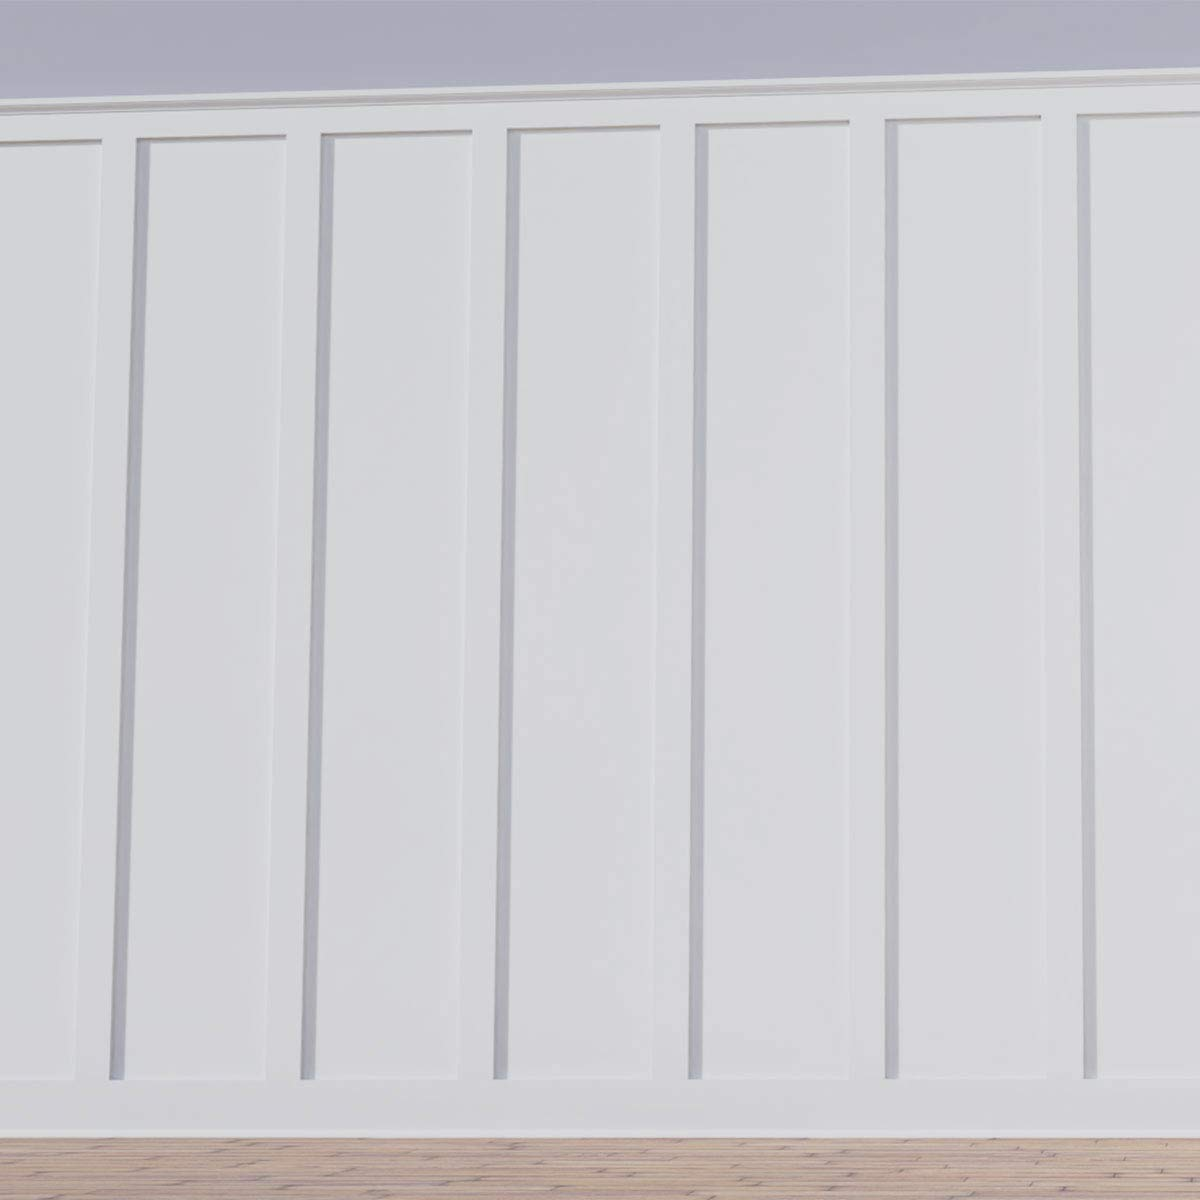 Deluxe Shaker 8 PVC Wainscoting Kit Factory Primed White Heights up to 56 Ekena Millwork WPKP56X04DS Adjustable Wall Panels 12-15